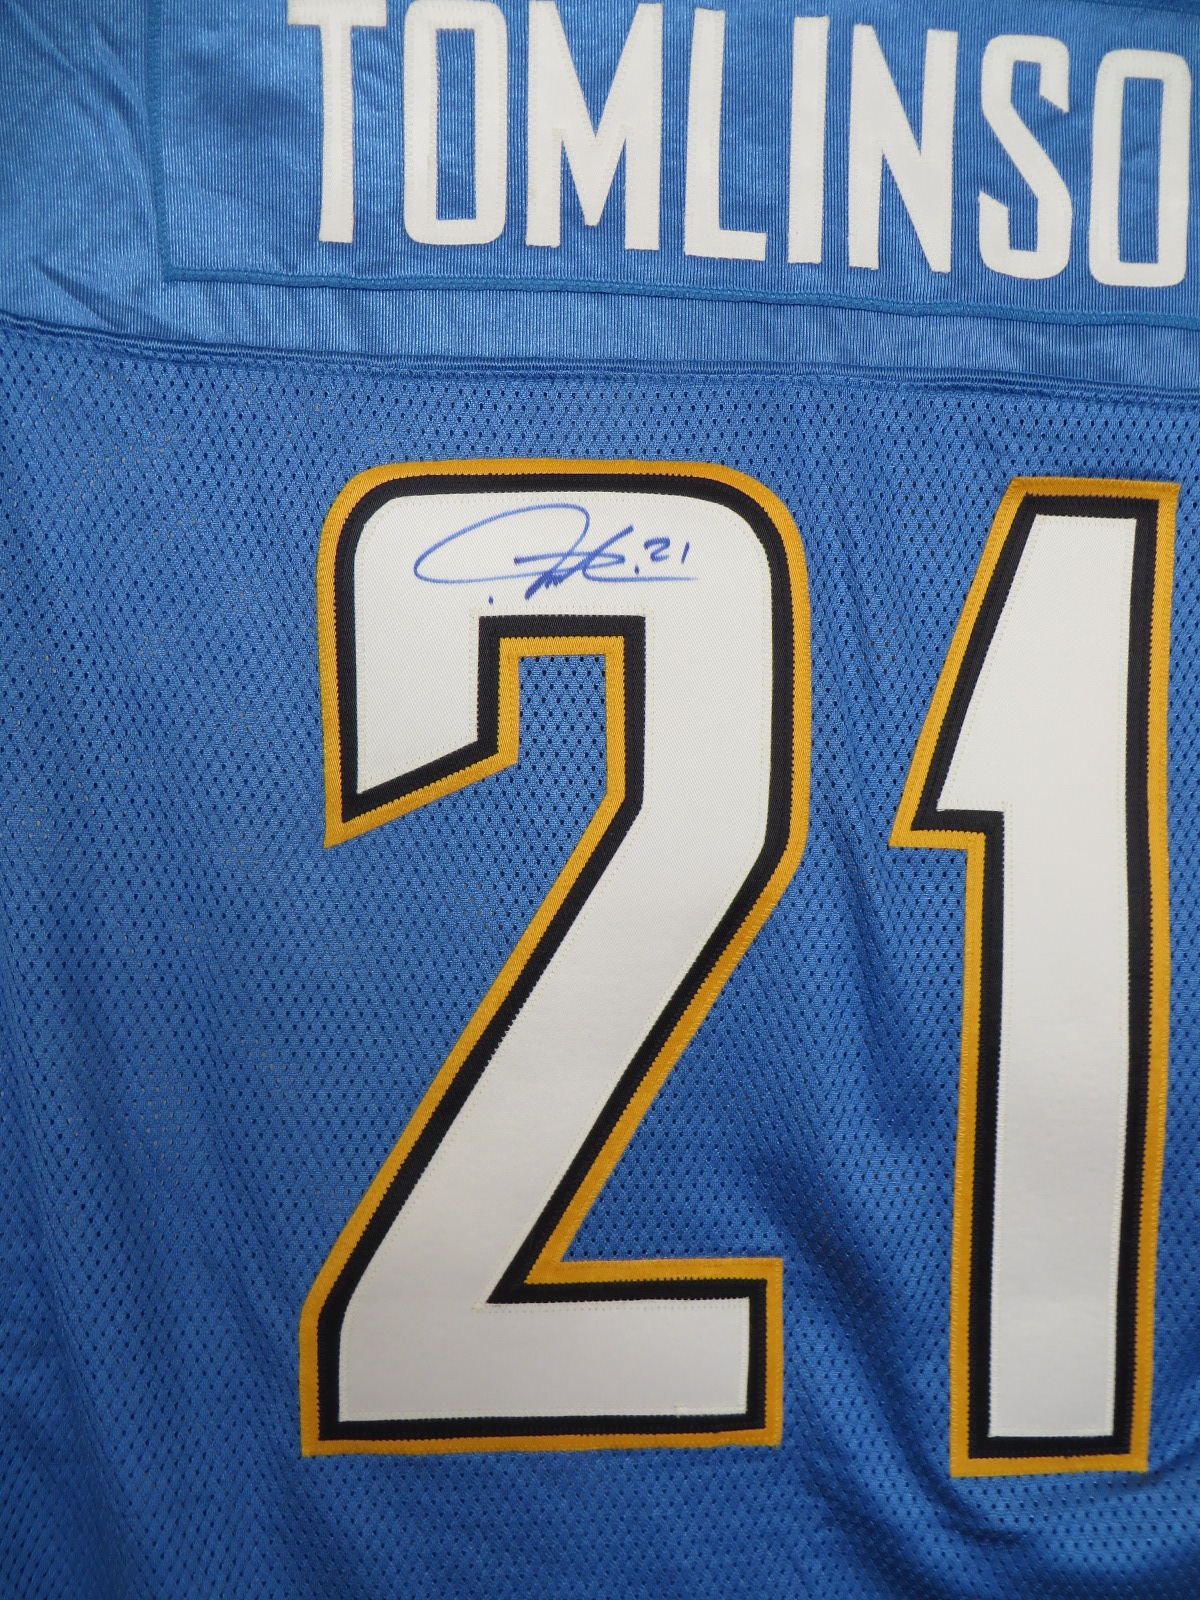 outlet store c5f2d b1f1b san diego chargers jersey numbers